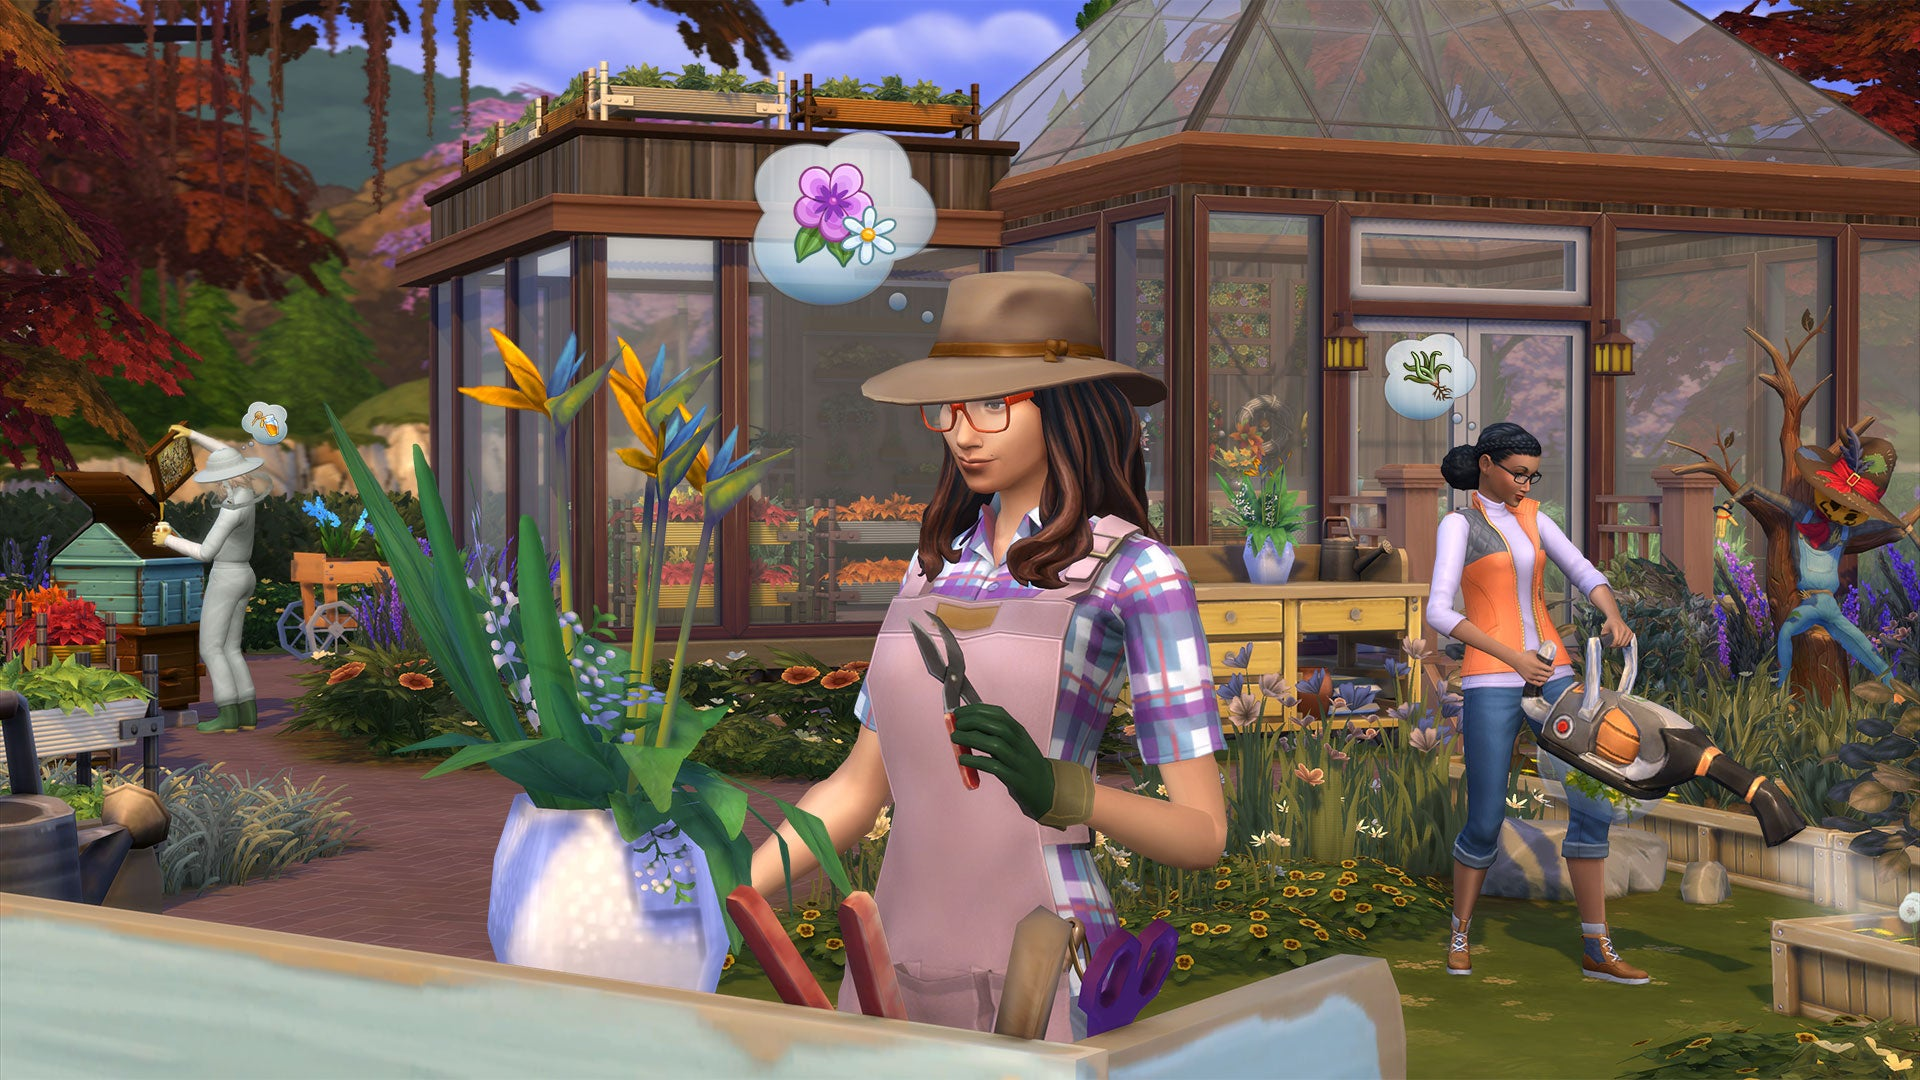 The Sims 4 Seasons Review | Trusted Reviews